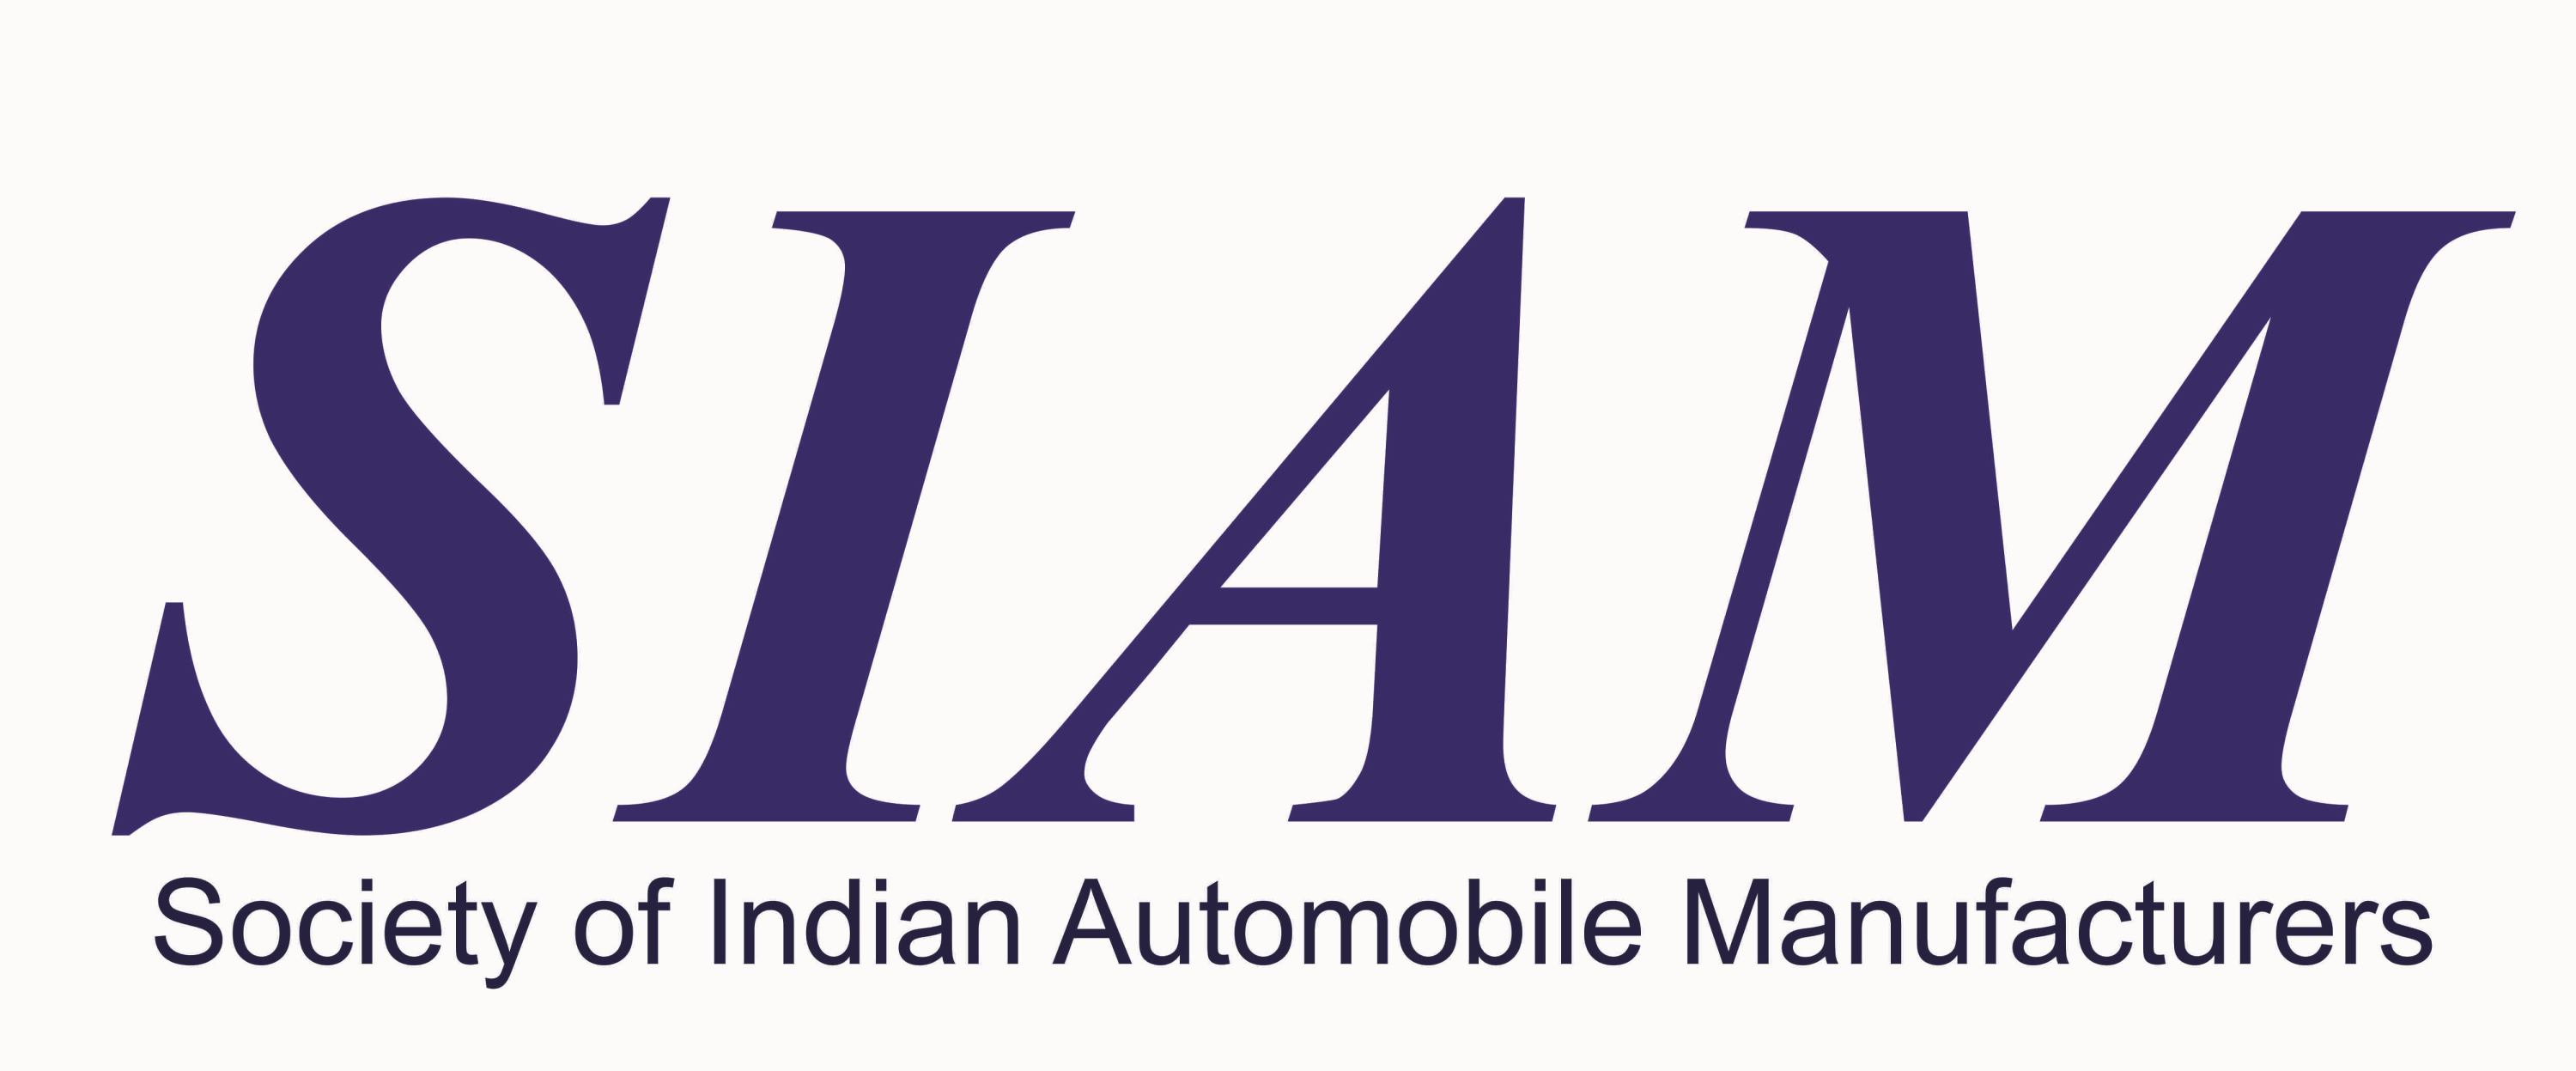 Indian Automobile Manufacturers (SIAM),